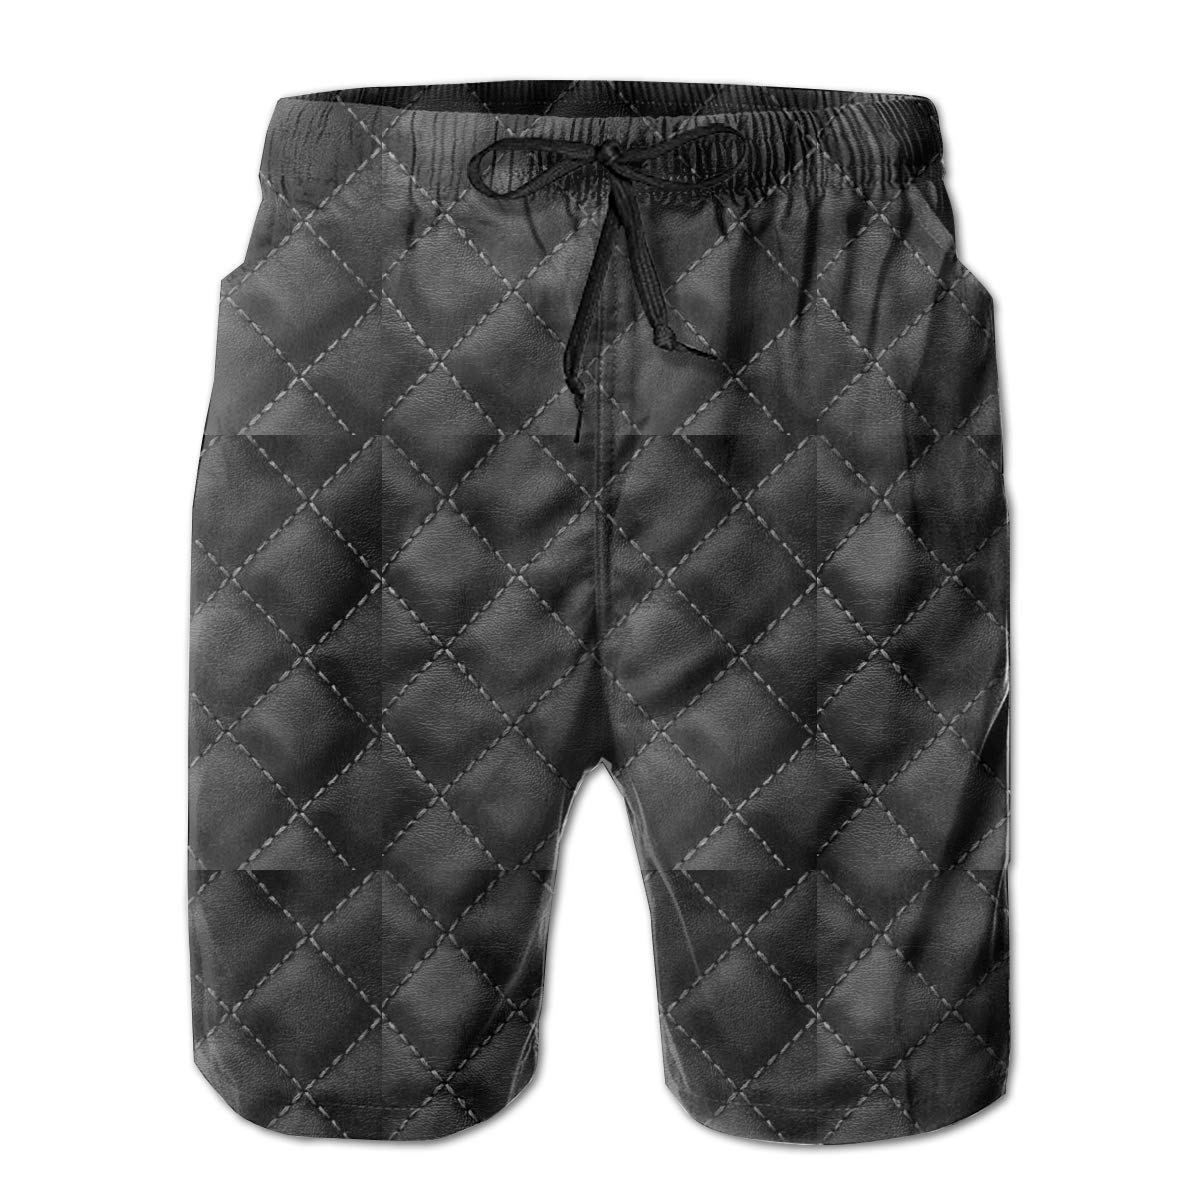 Black Leather Pattern Mens Beach Shorts Casual Classic Bathing Suit